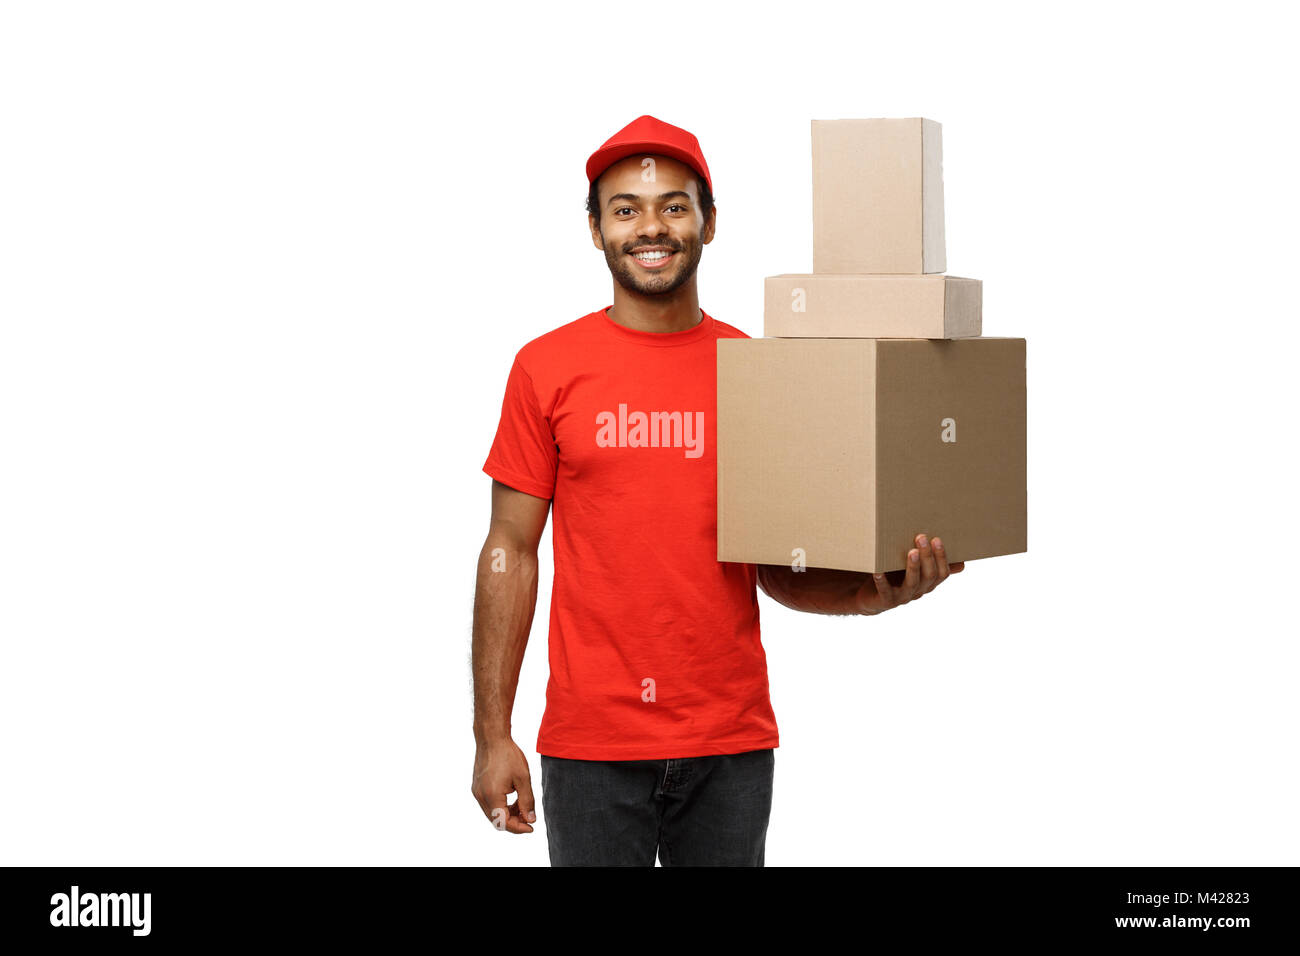 Delivery Concept - Portrait of Happy African American delivery man in red cloth holding a box package. Isolated - Stock Image